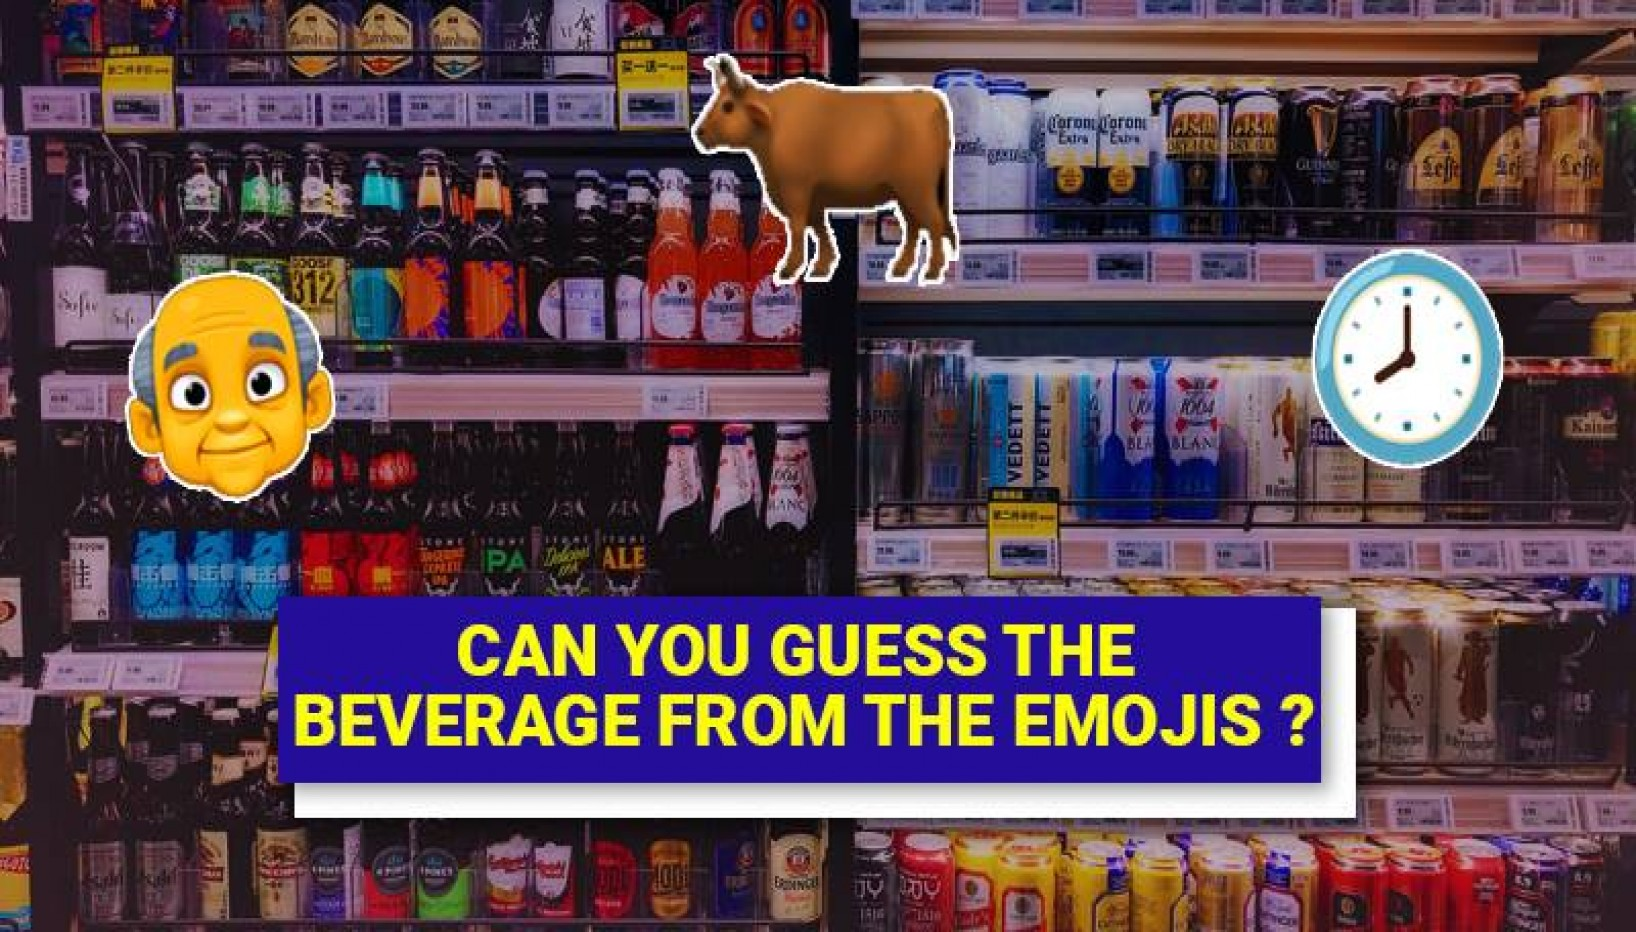 Can You Identify These Beverages From Just These Emojis?